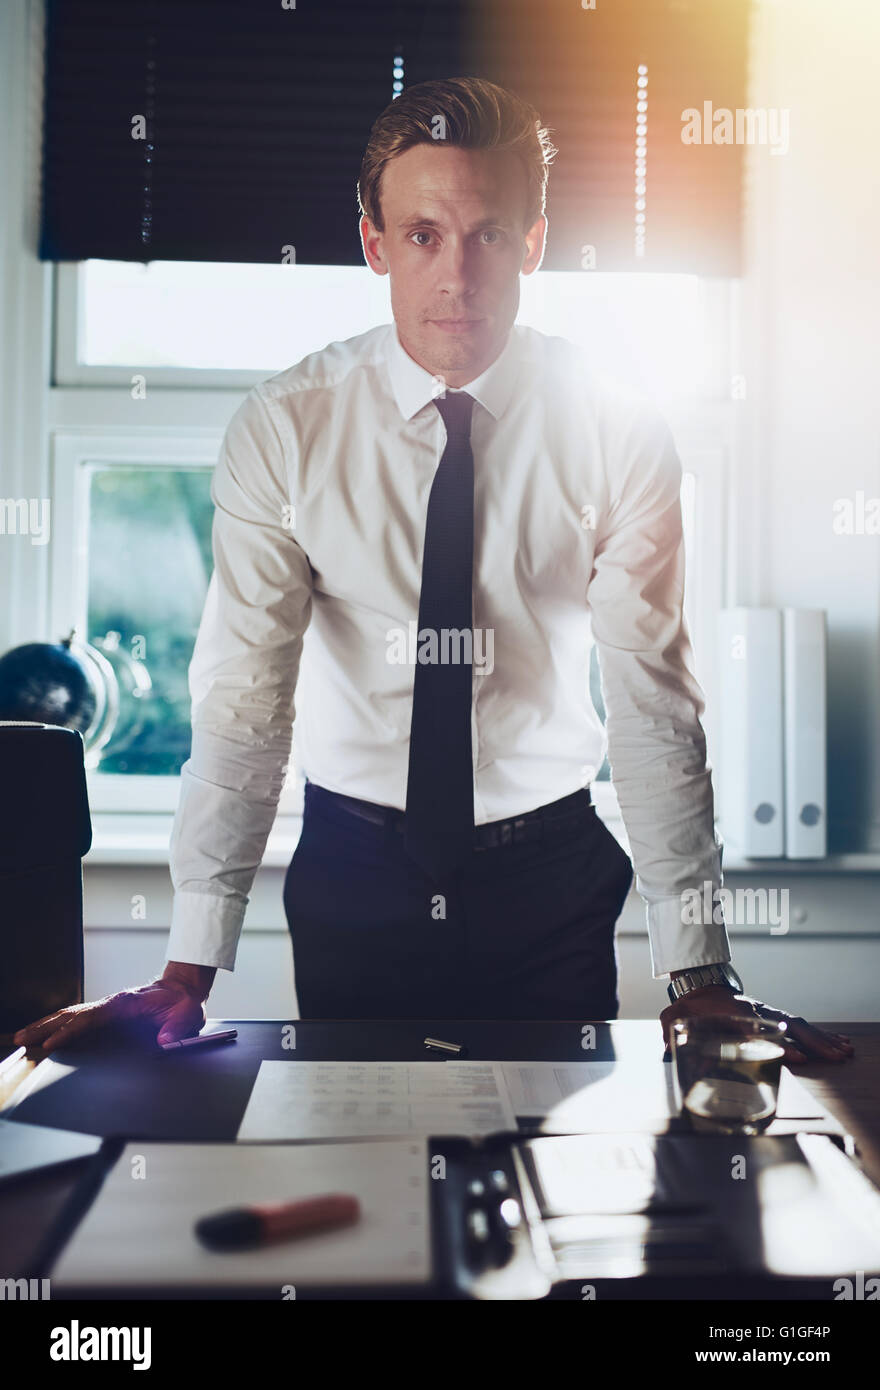 Executive business man standing at desk at office with hands resting at desk looking serious at camera - Stock Image